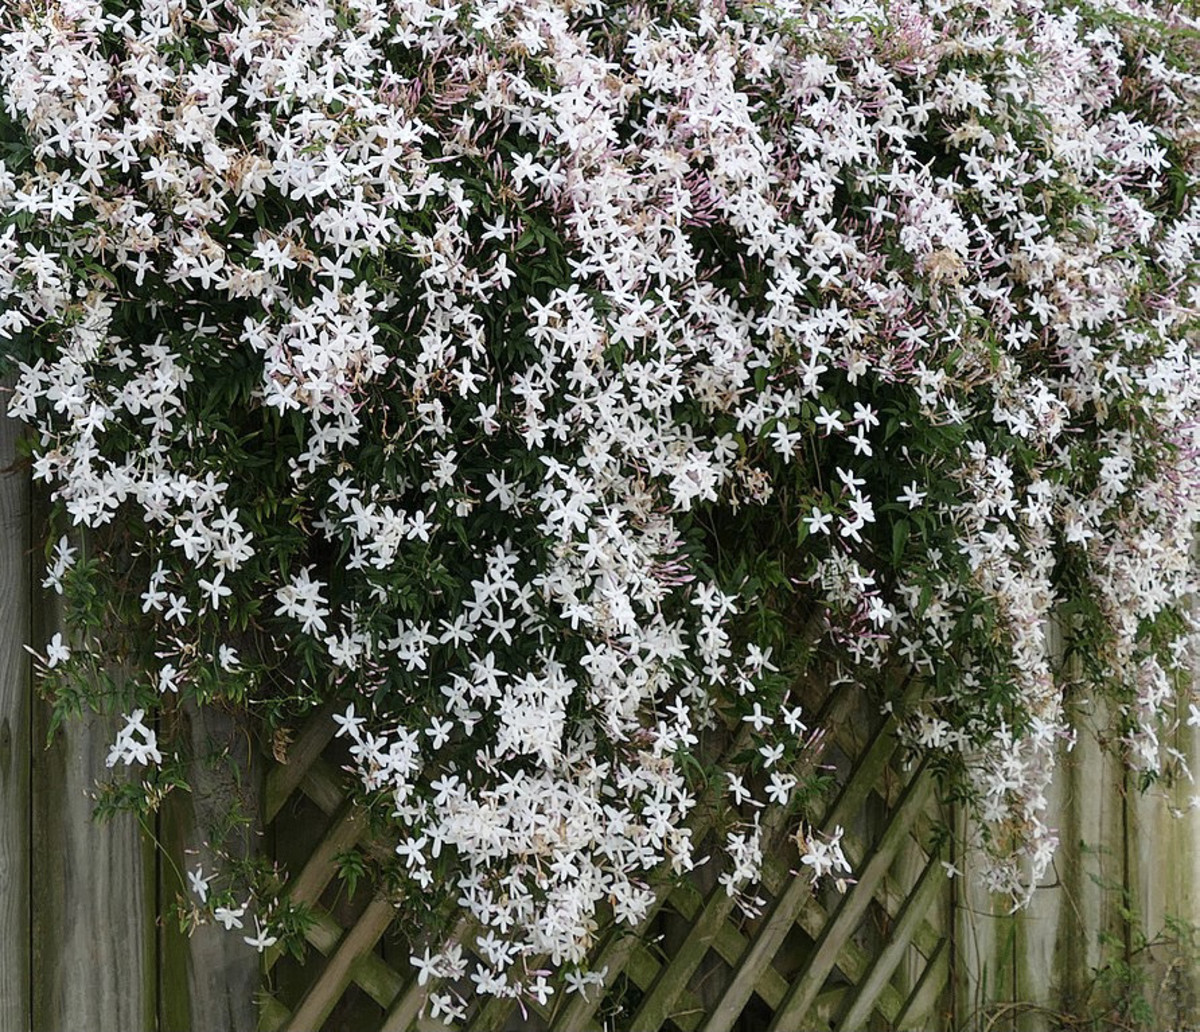 Pink Jasmine, Jasminum polyanthum, native to China. Highly fragrant. Can grow up to 20 ft. long. In warmer climates it will bloom year round.